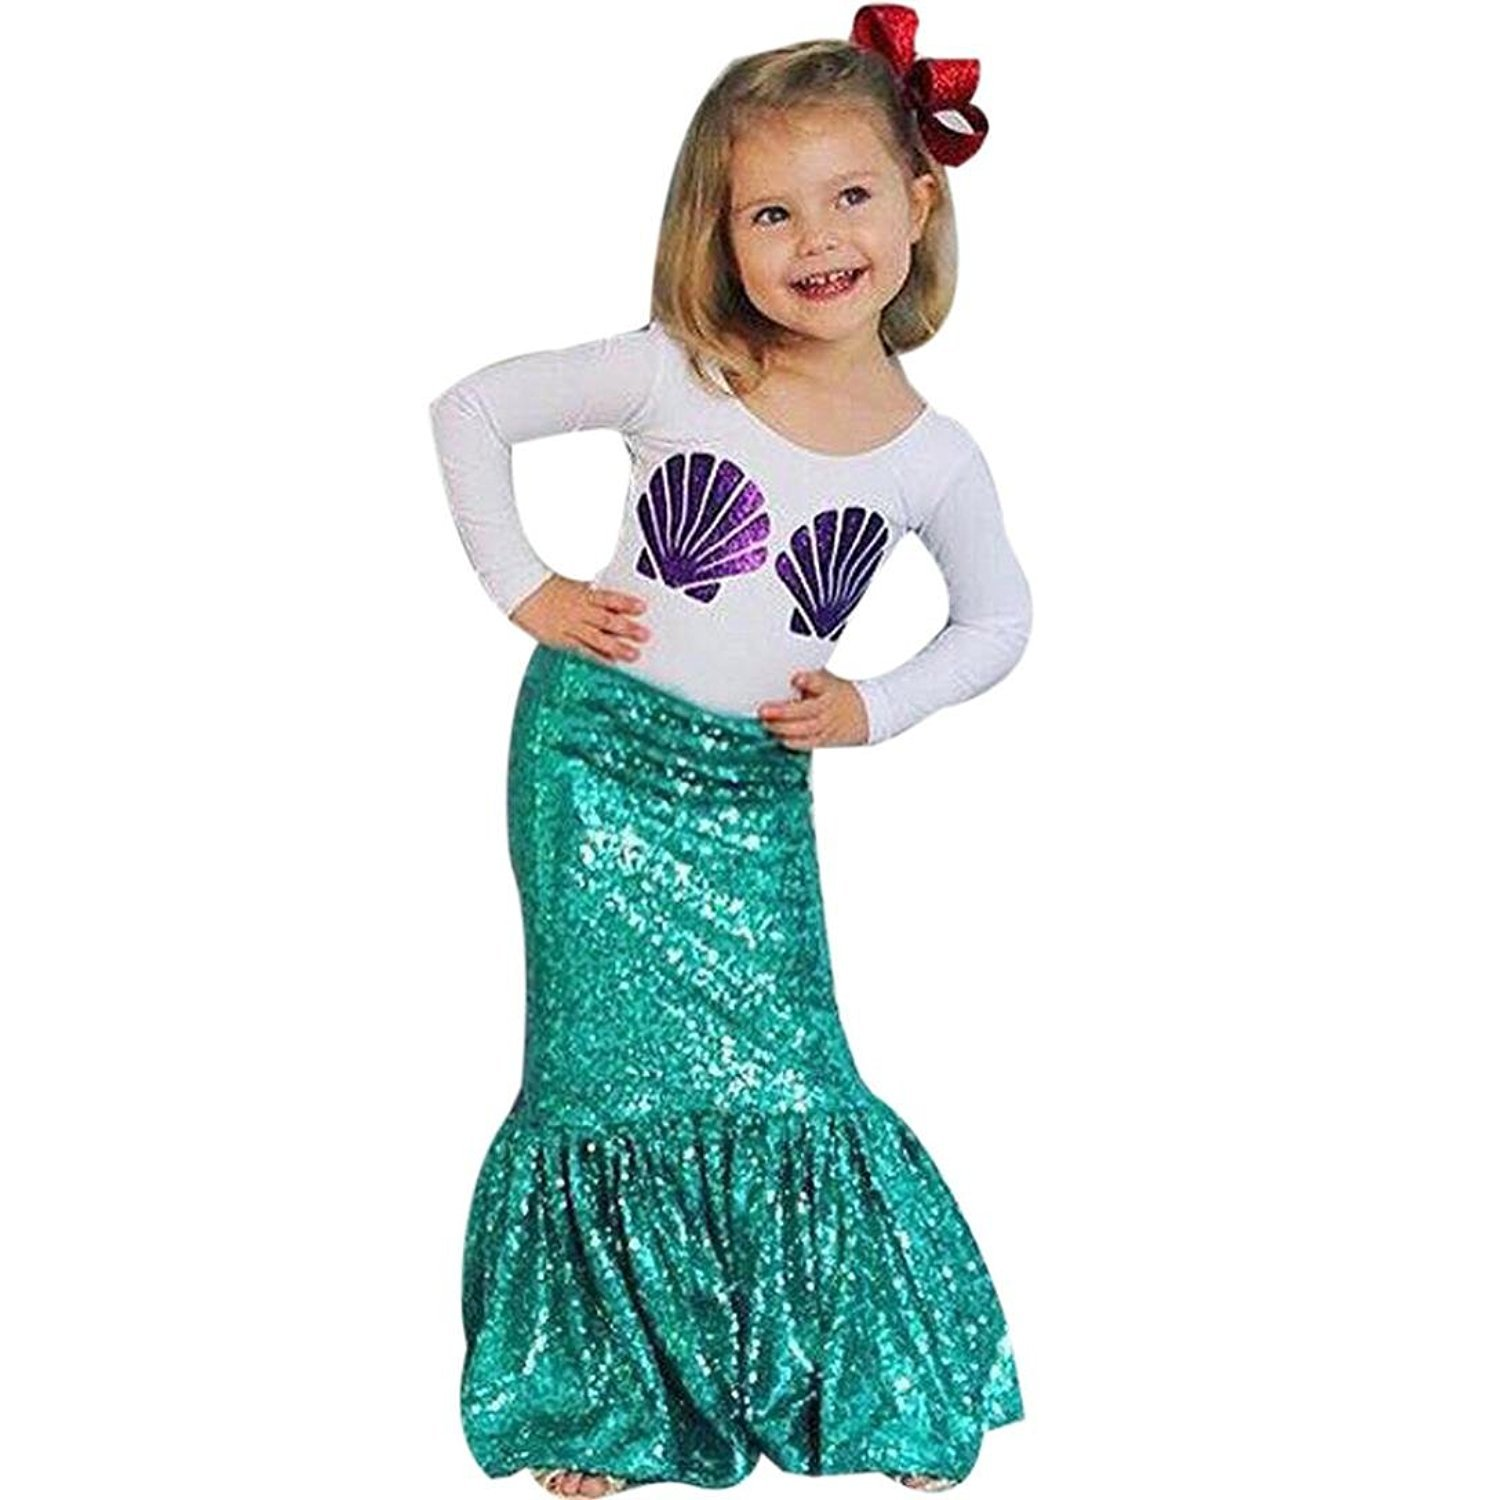 GQMART Fashion Kids Girl Shell Print T-Shirt Tops Mermaid Skirt Outfits Clothes